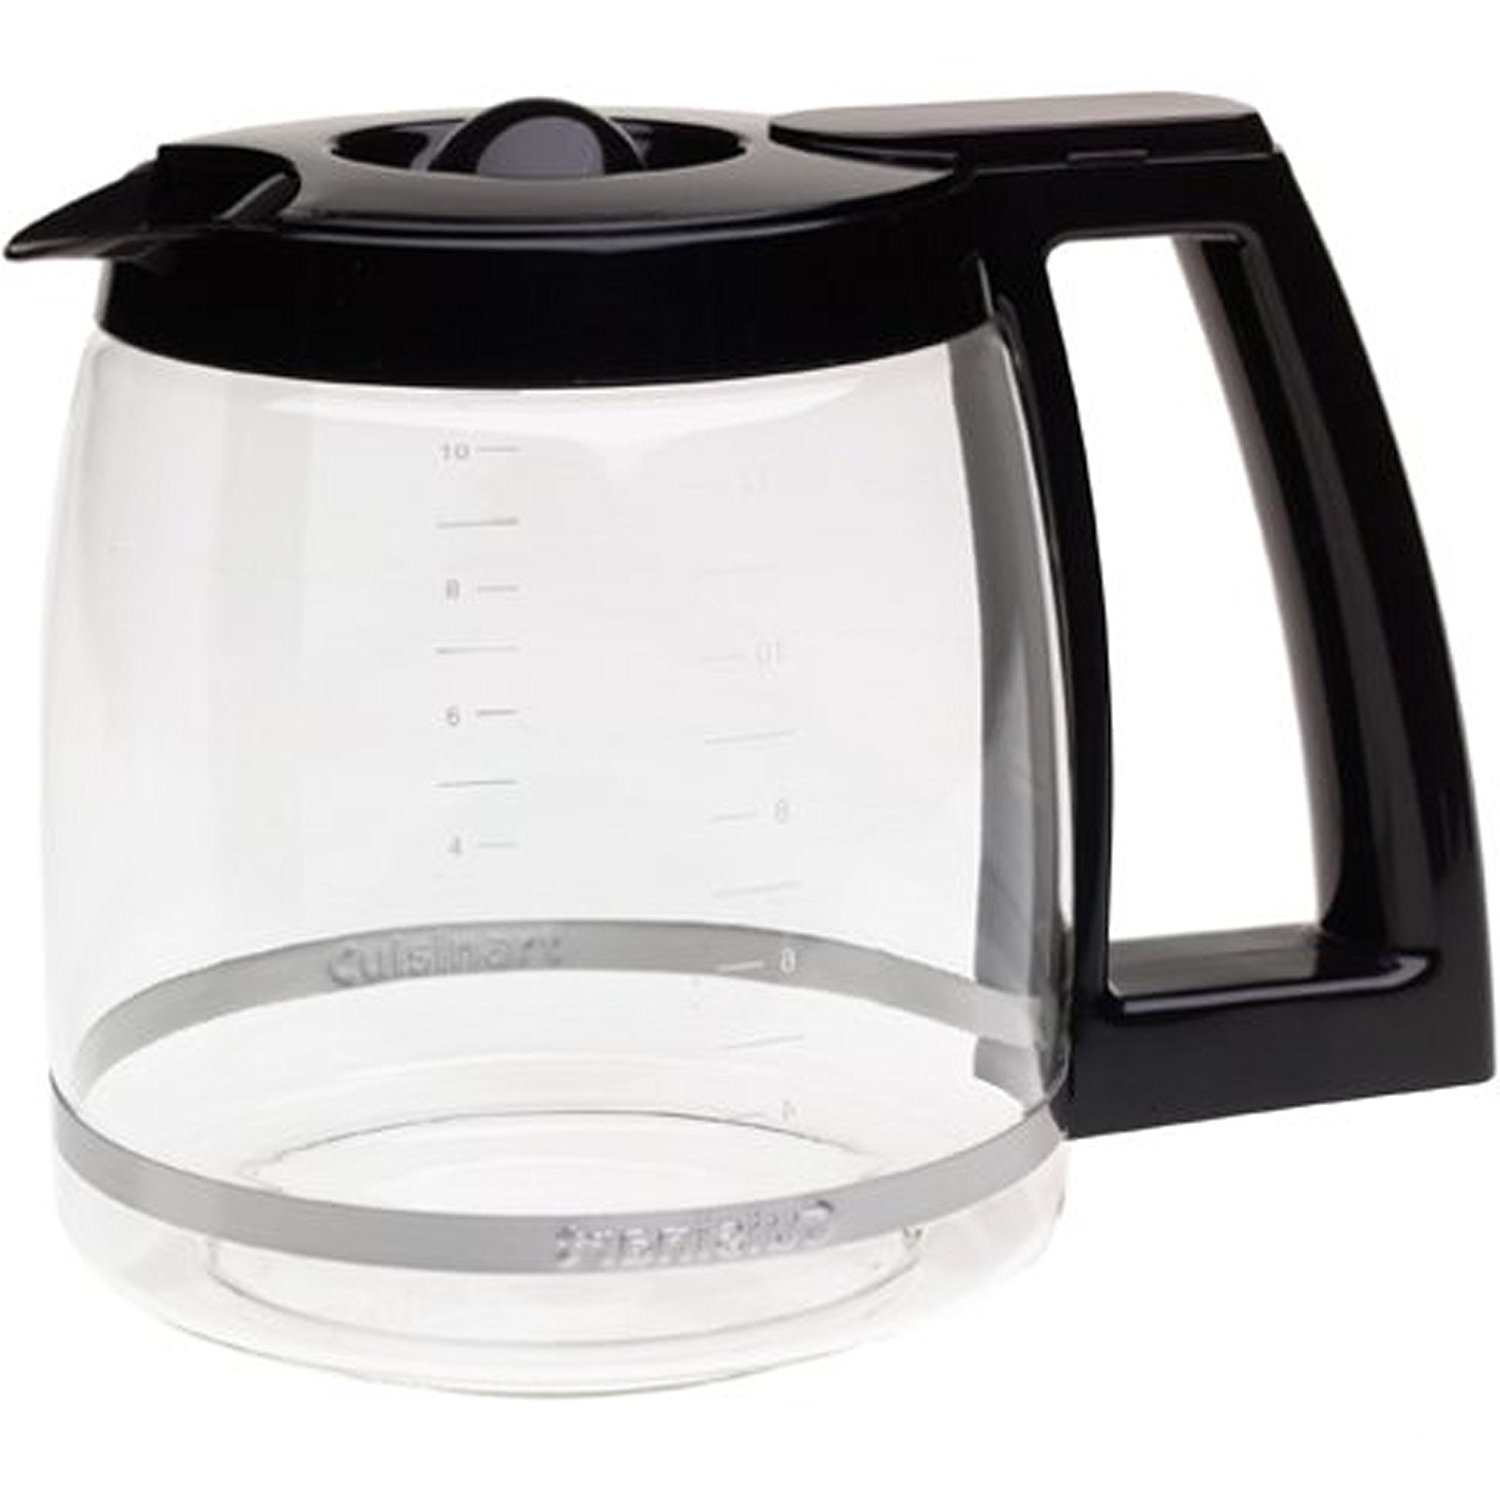 Replacement Glass Black Onyx For KitchenAid 12-Cup Carafe KCM11GC